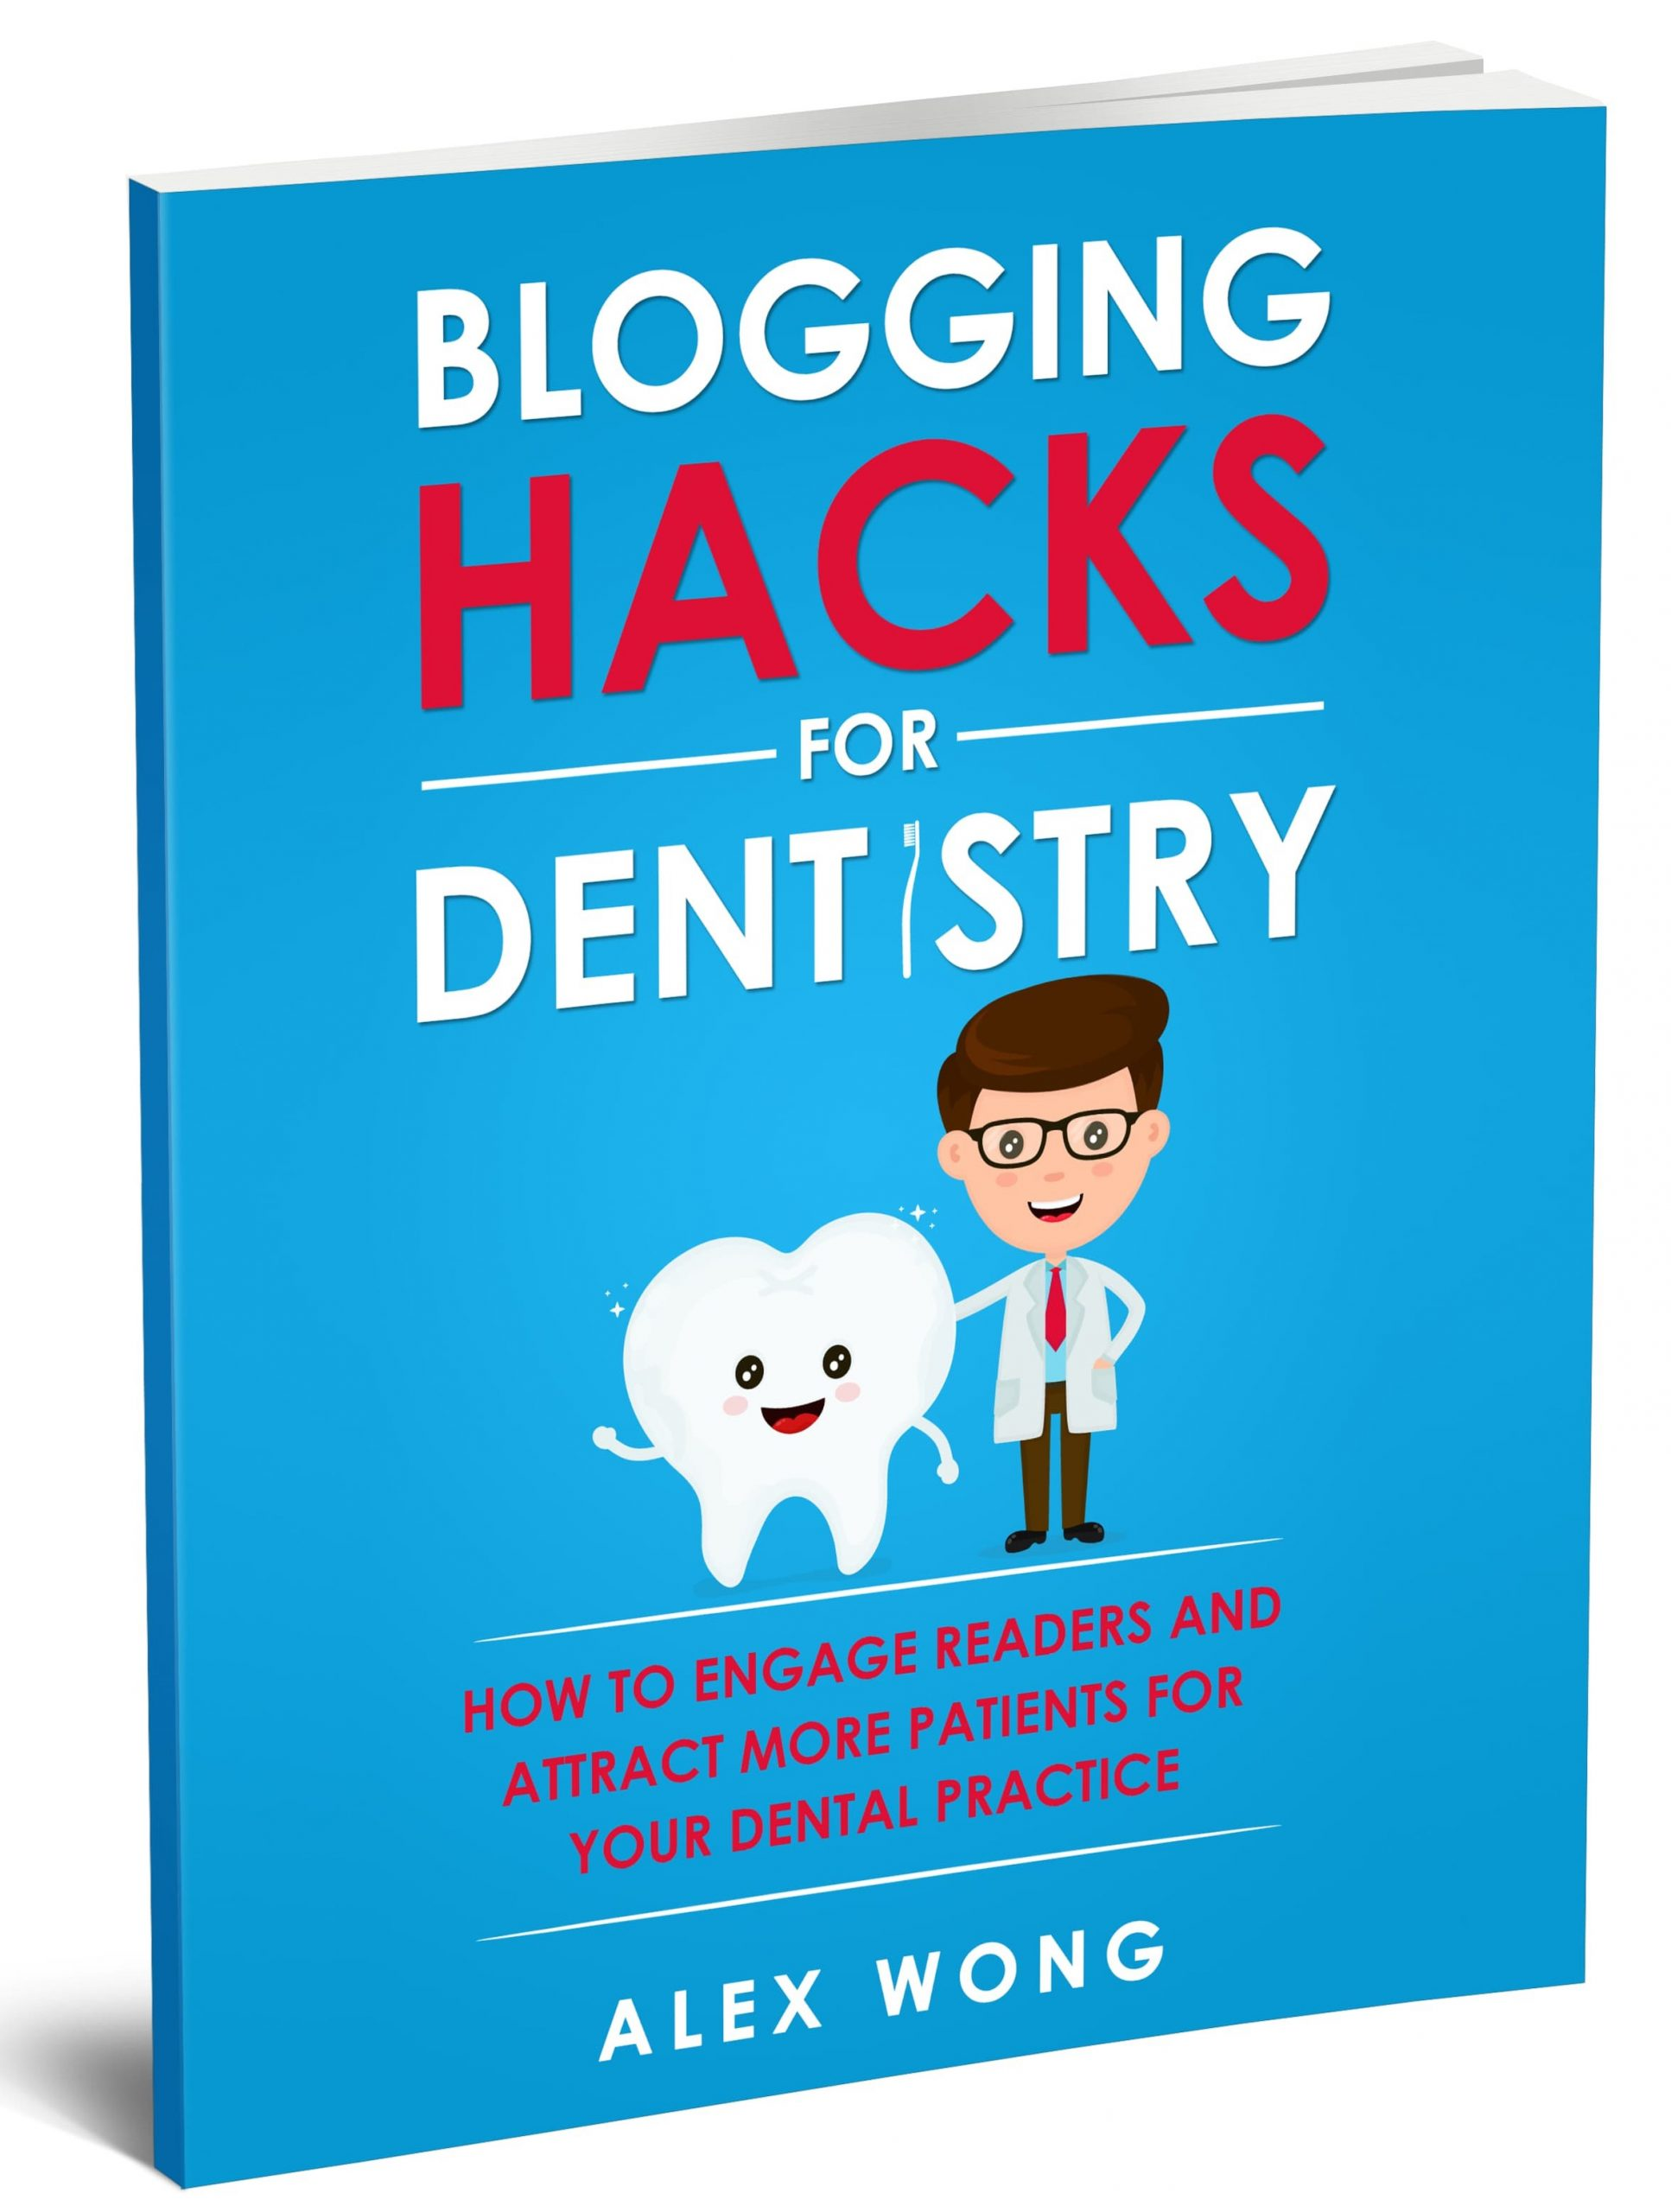 Blogging Hacks For Dentistry